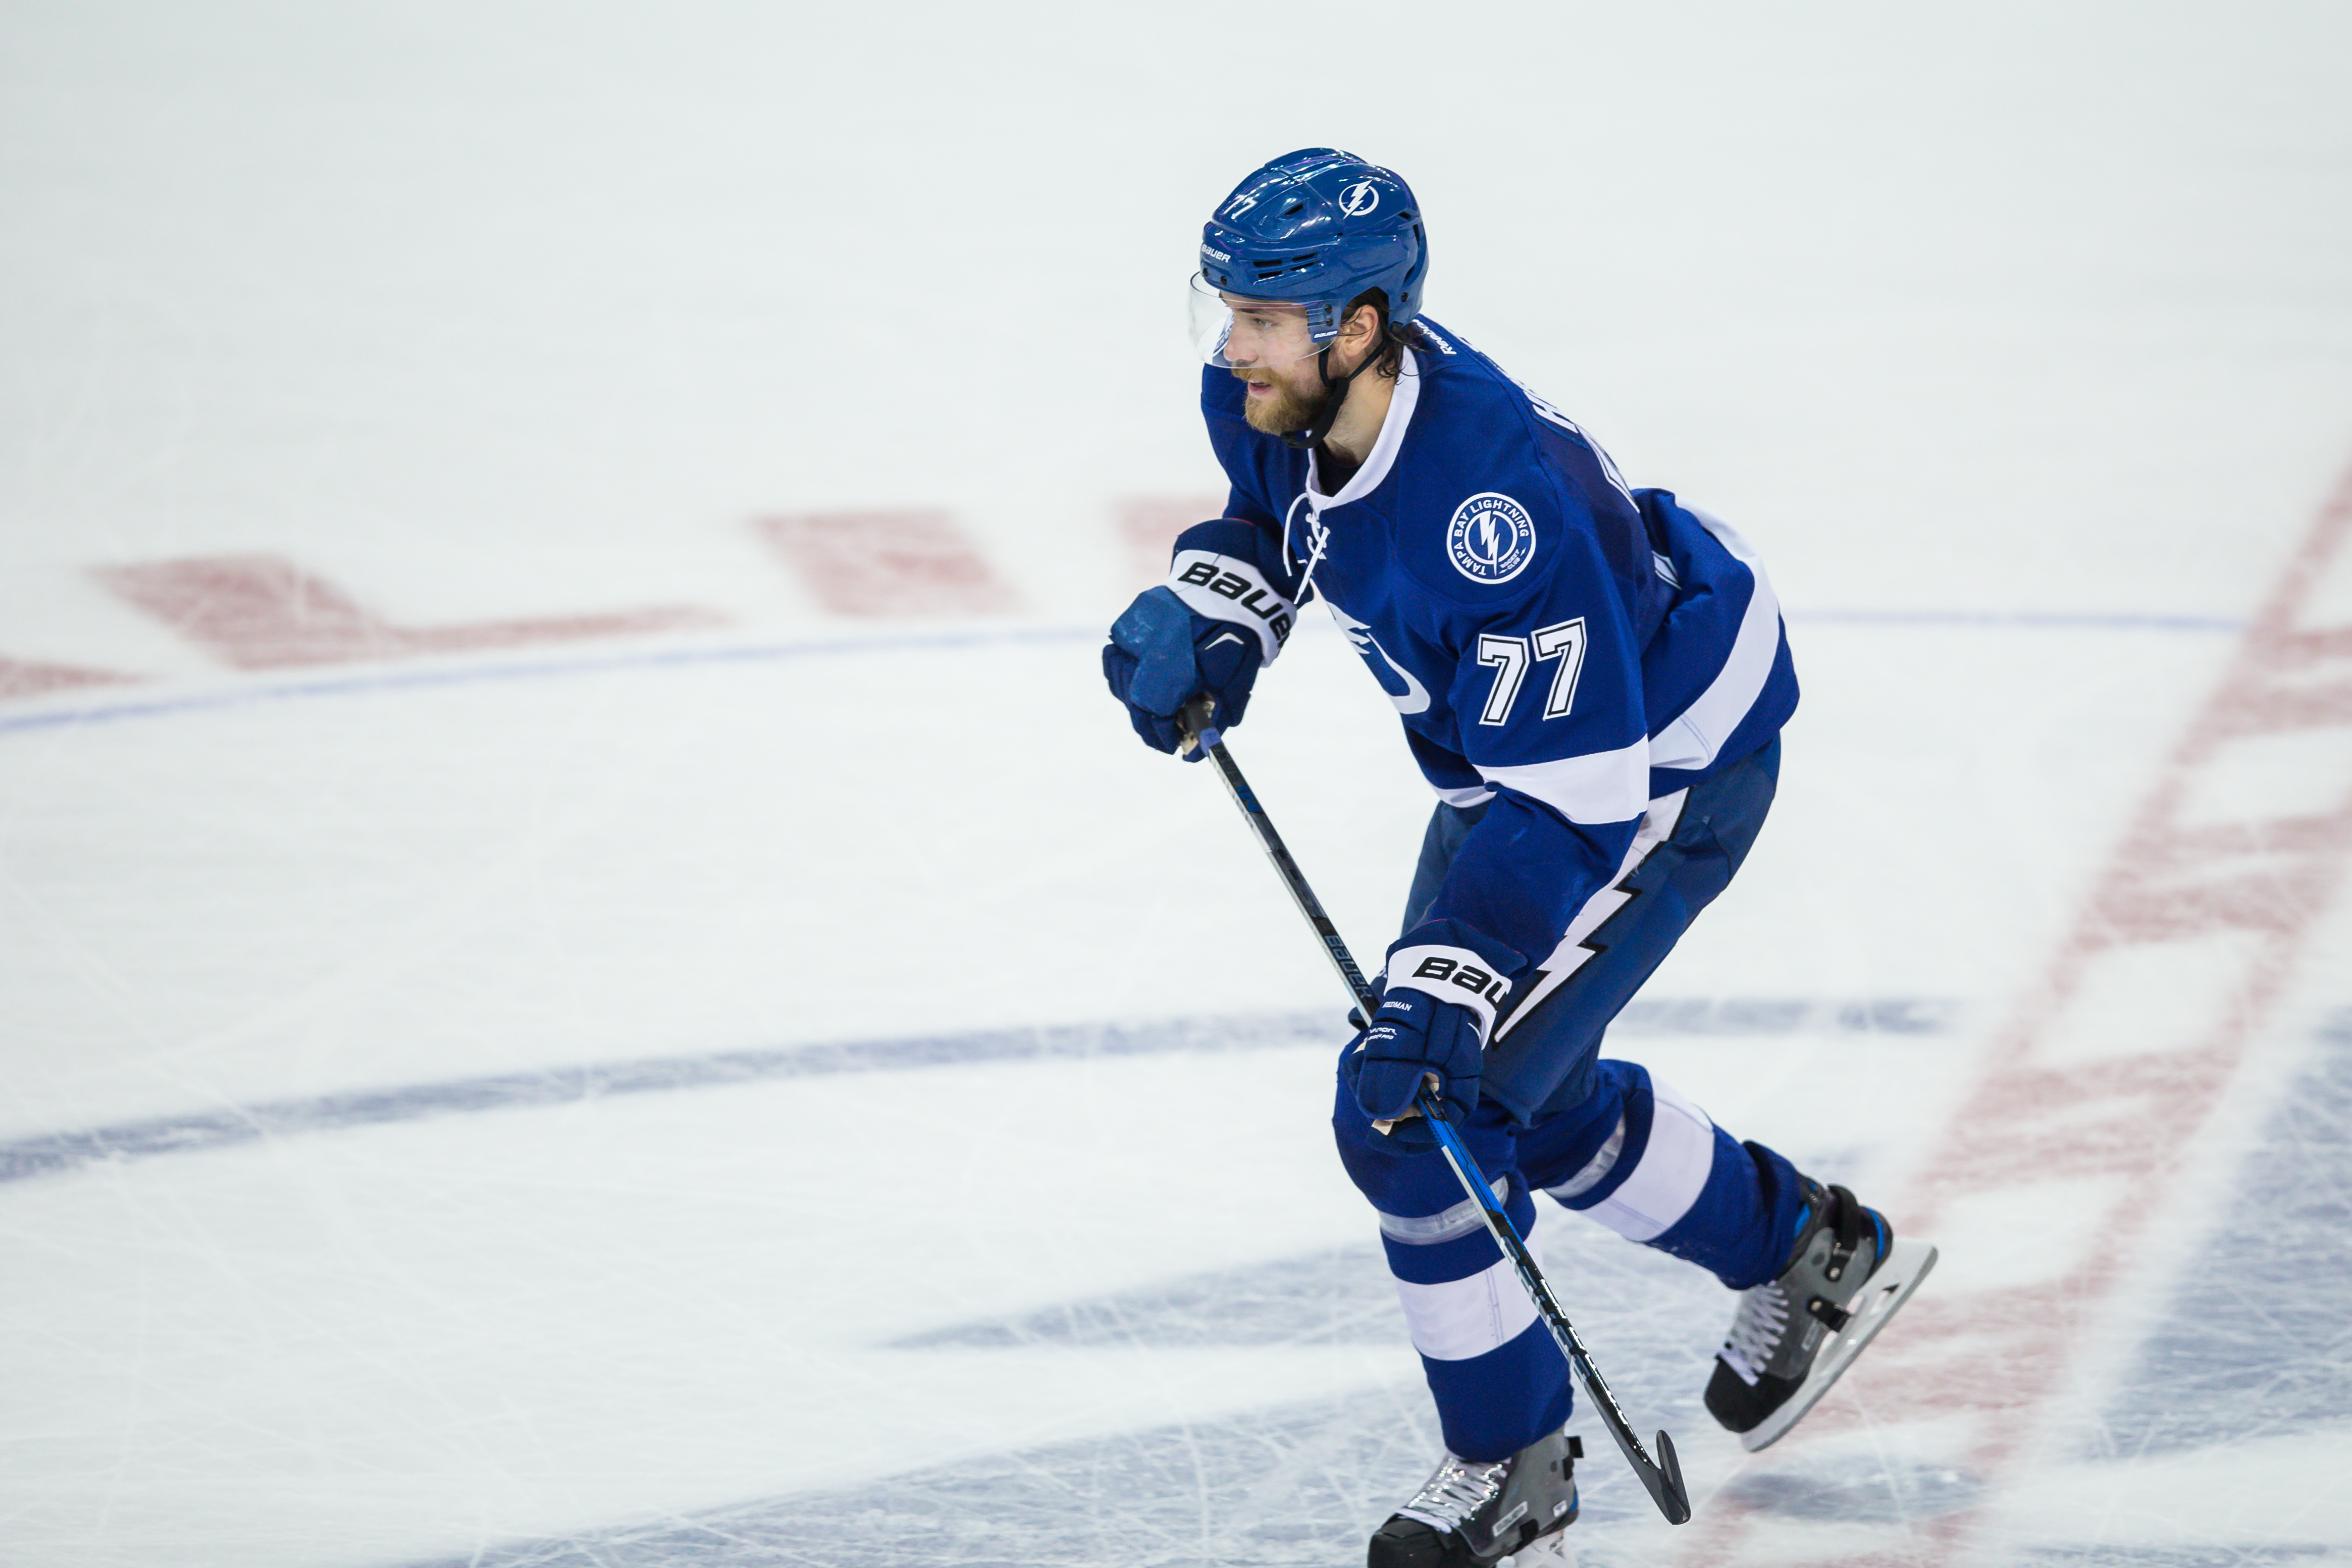 Herman scored two goals, including the game-winner, for Bolts. /TRAVIS PENDERGRASS